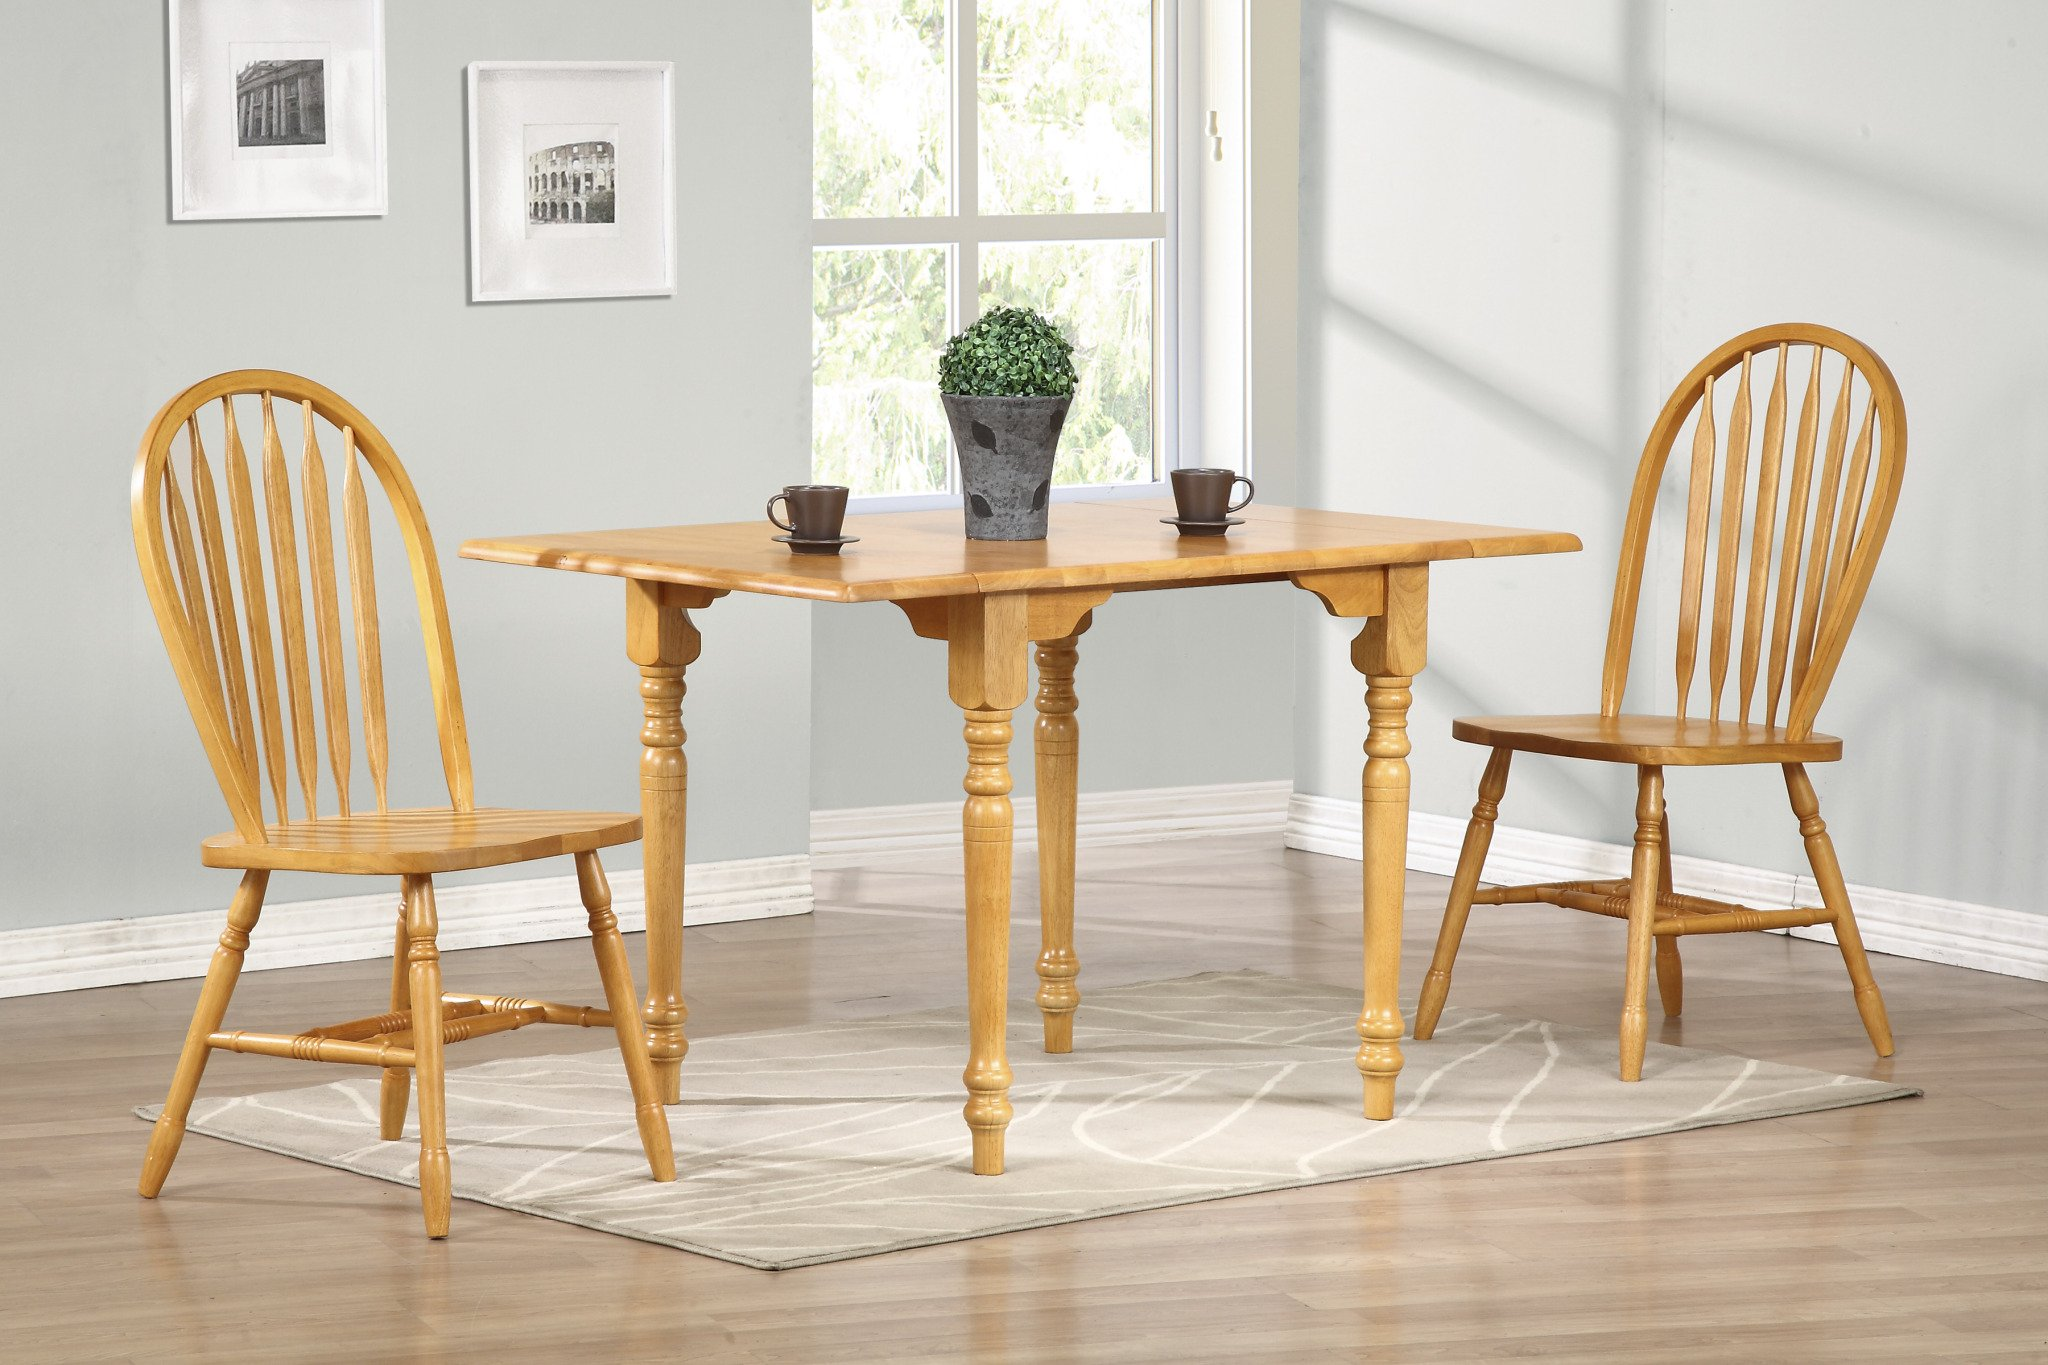 Sunset Trading Arrowback Dining Chair, Set of 2, 38'', Light Oak by Sunset Trading (Image #3)